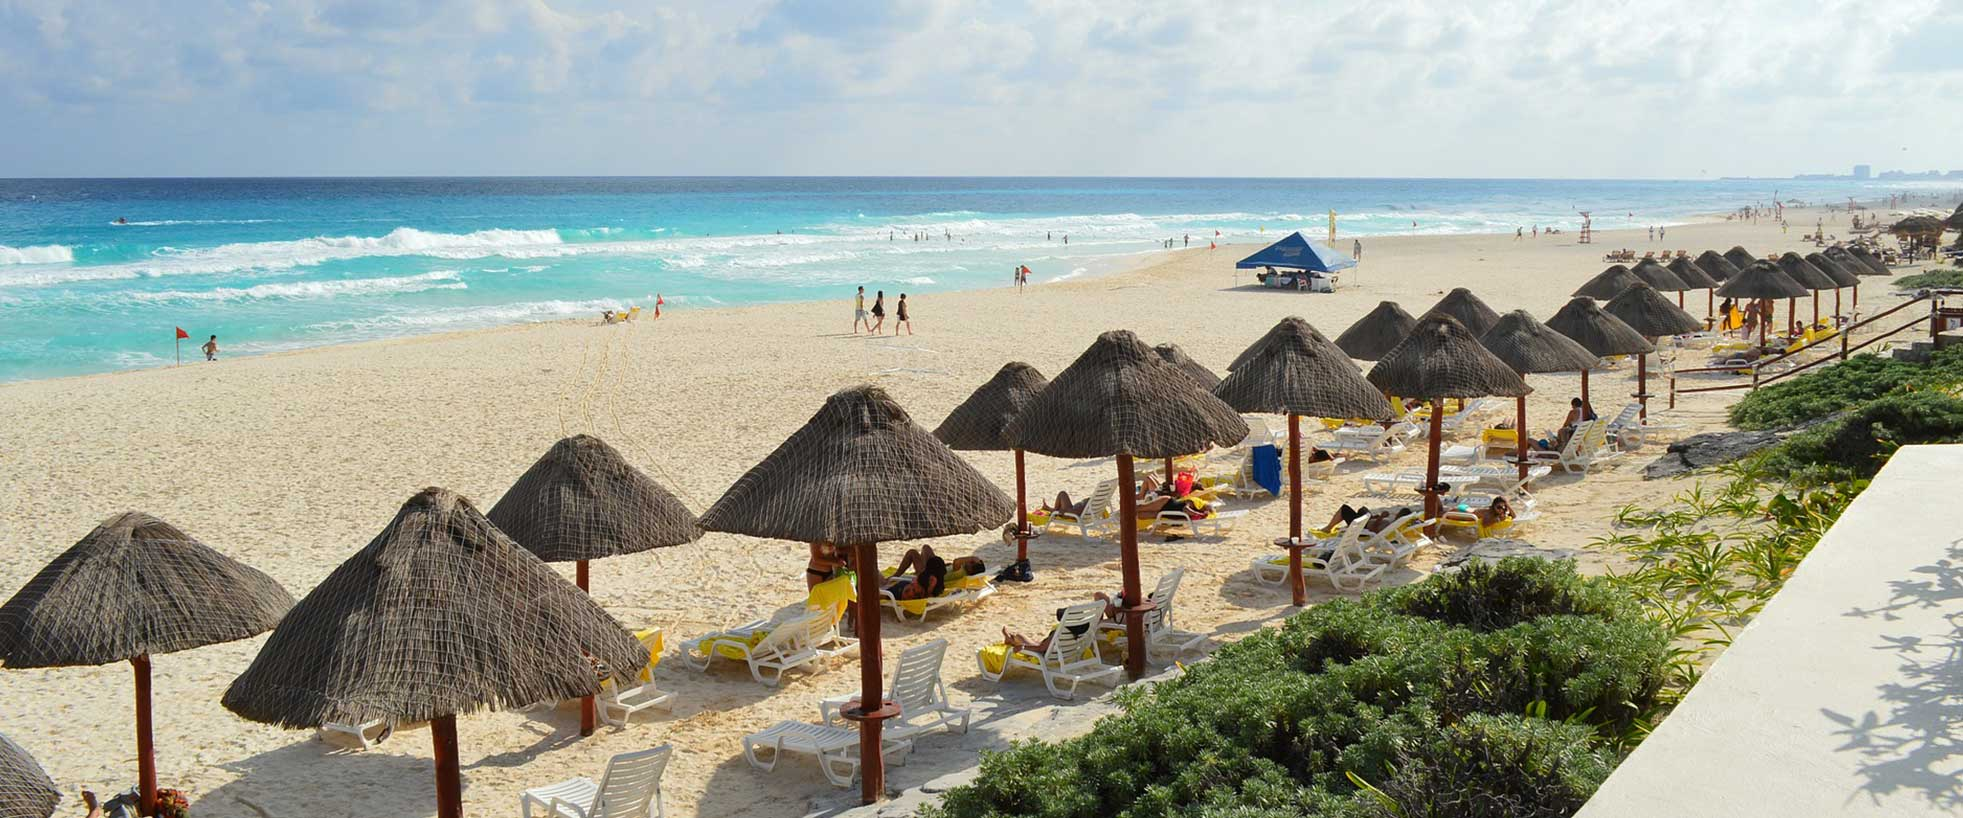 ON-VACATION-DESITNO-CANCUN